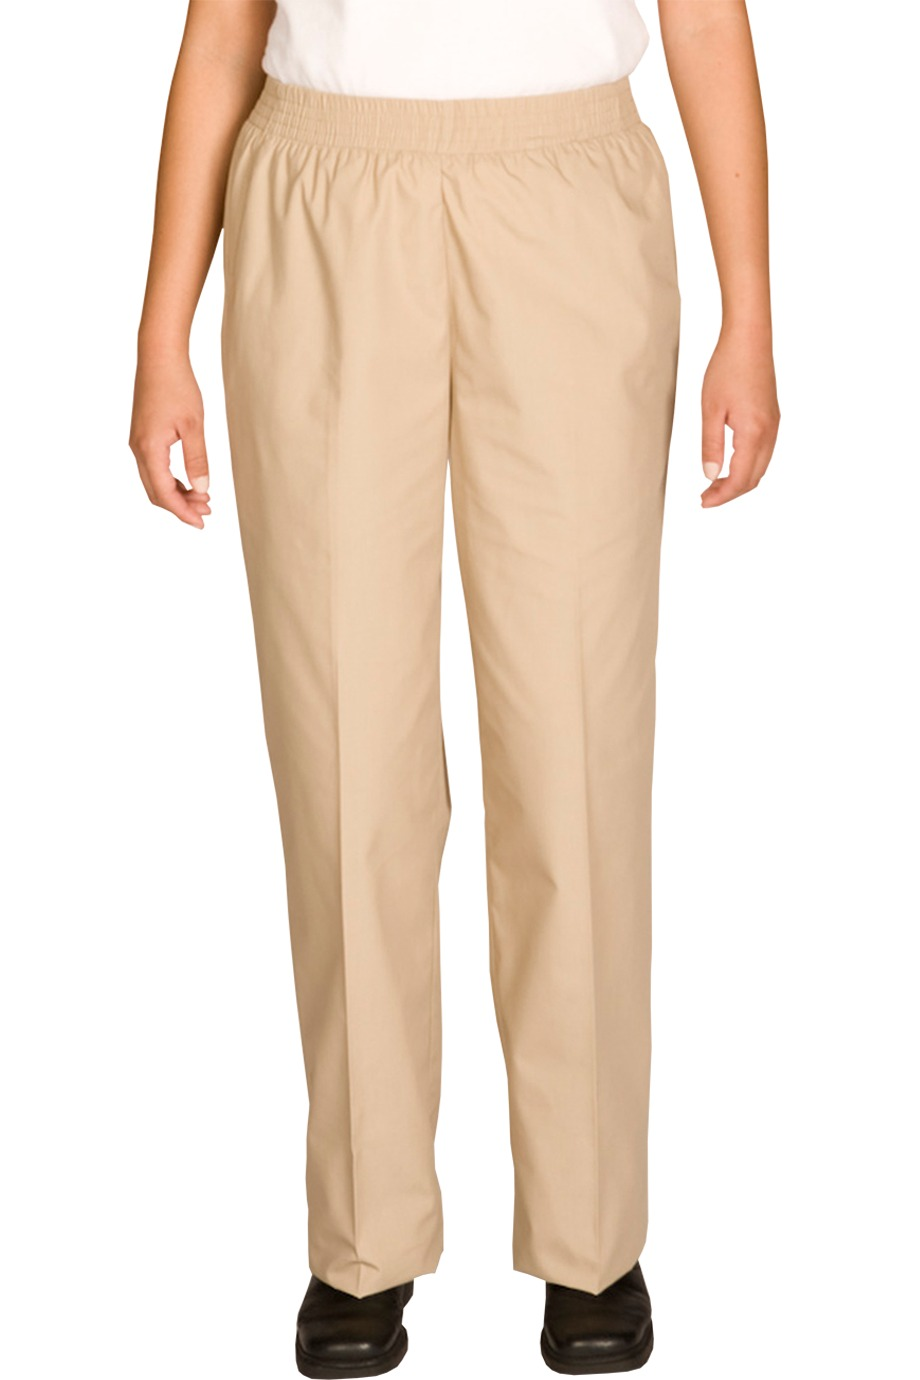 Edwards Garment 8886 - Women's Poly/Cotton Pull-On-Pant